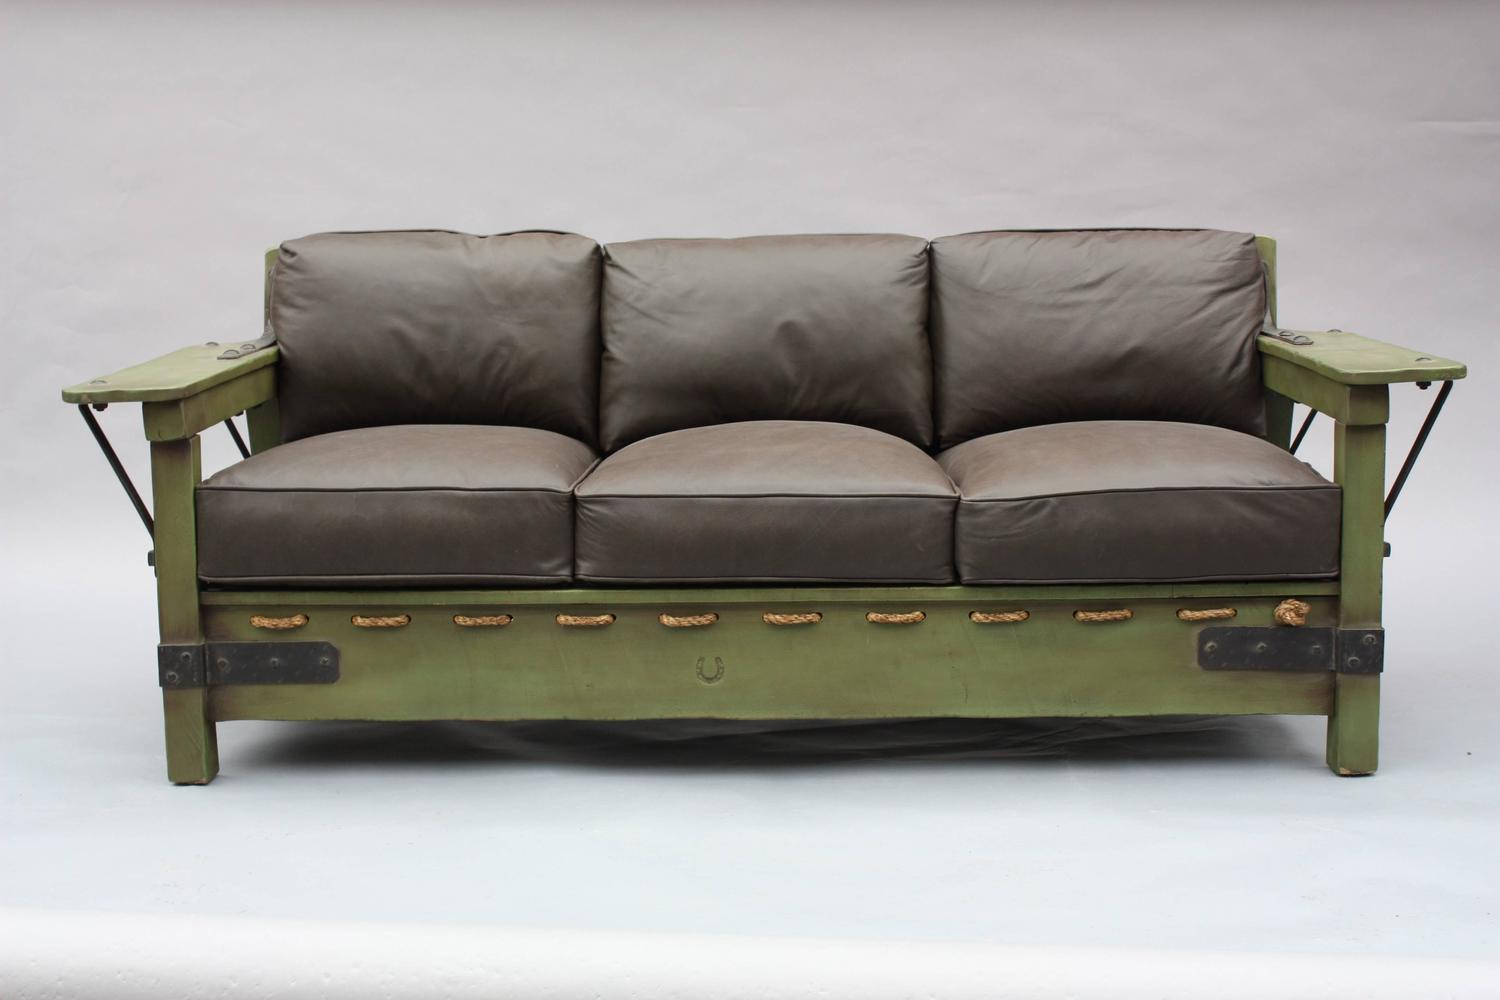 rope bottom chair soft chairs spread the hips classic monterey green sofa frame at 1stdibs